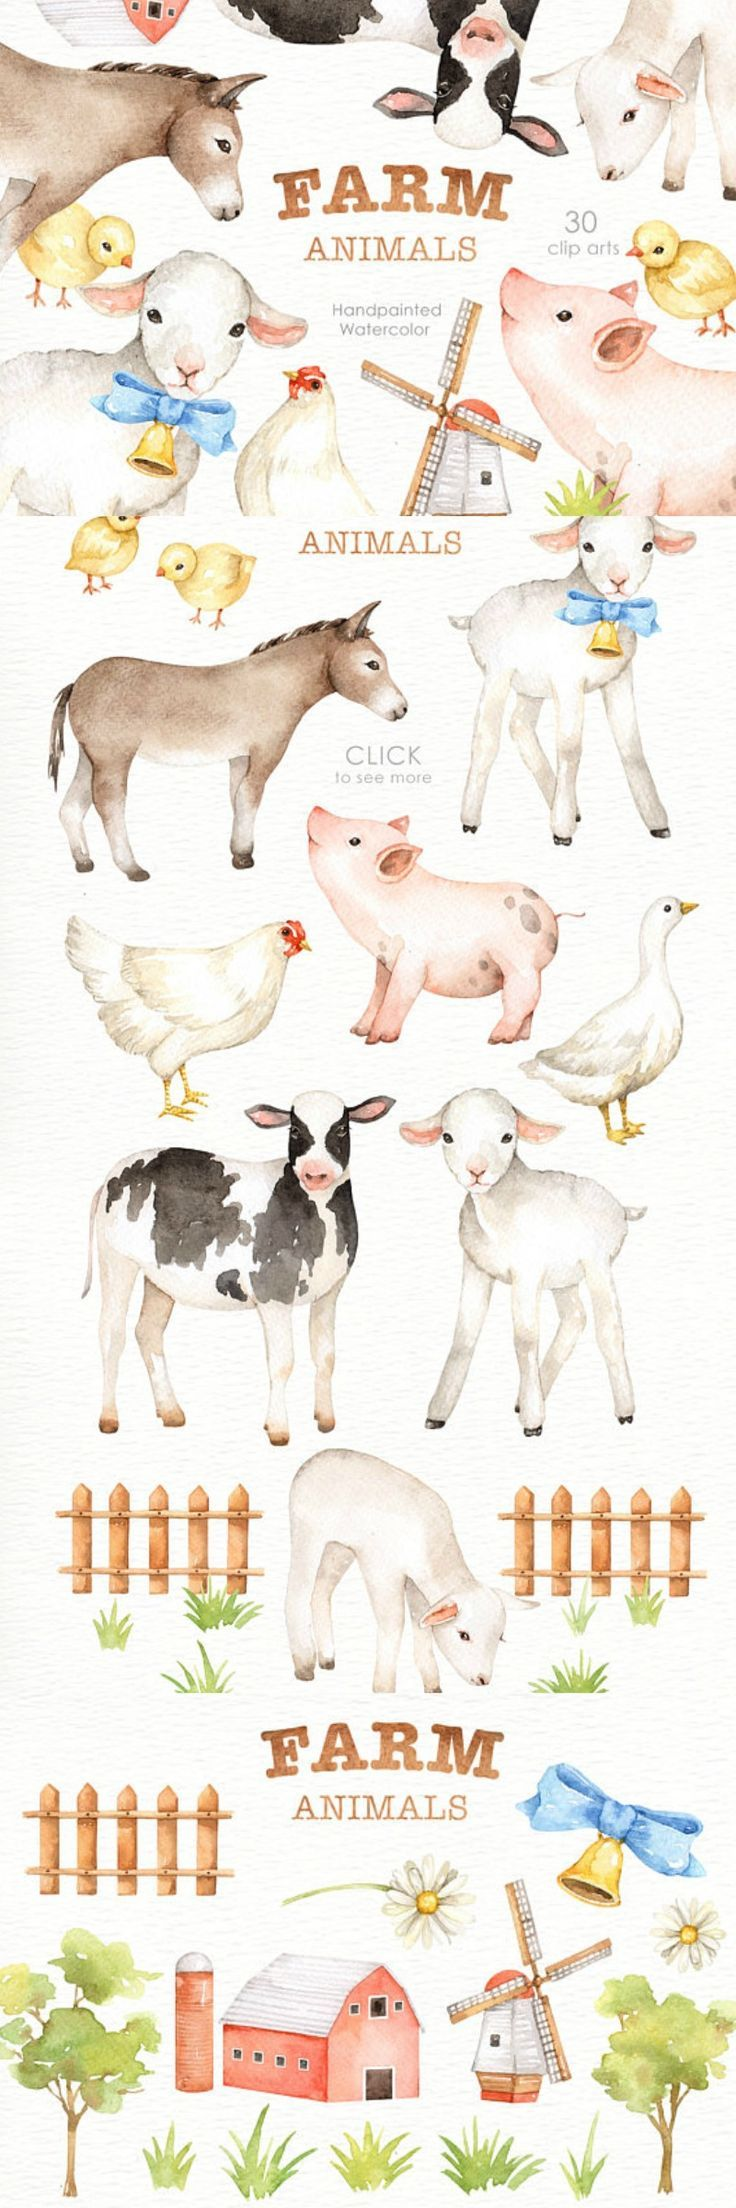 Farm Animals Watercolor clipart, Nursery Prints, Farm Animals Nursery Art, Nursery Printables, Instant Download, Woodland Animals, Kids Art